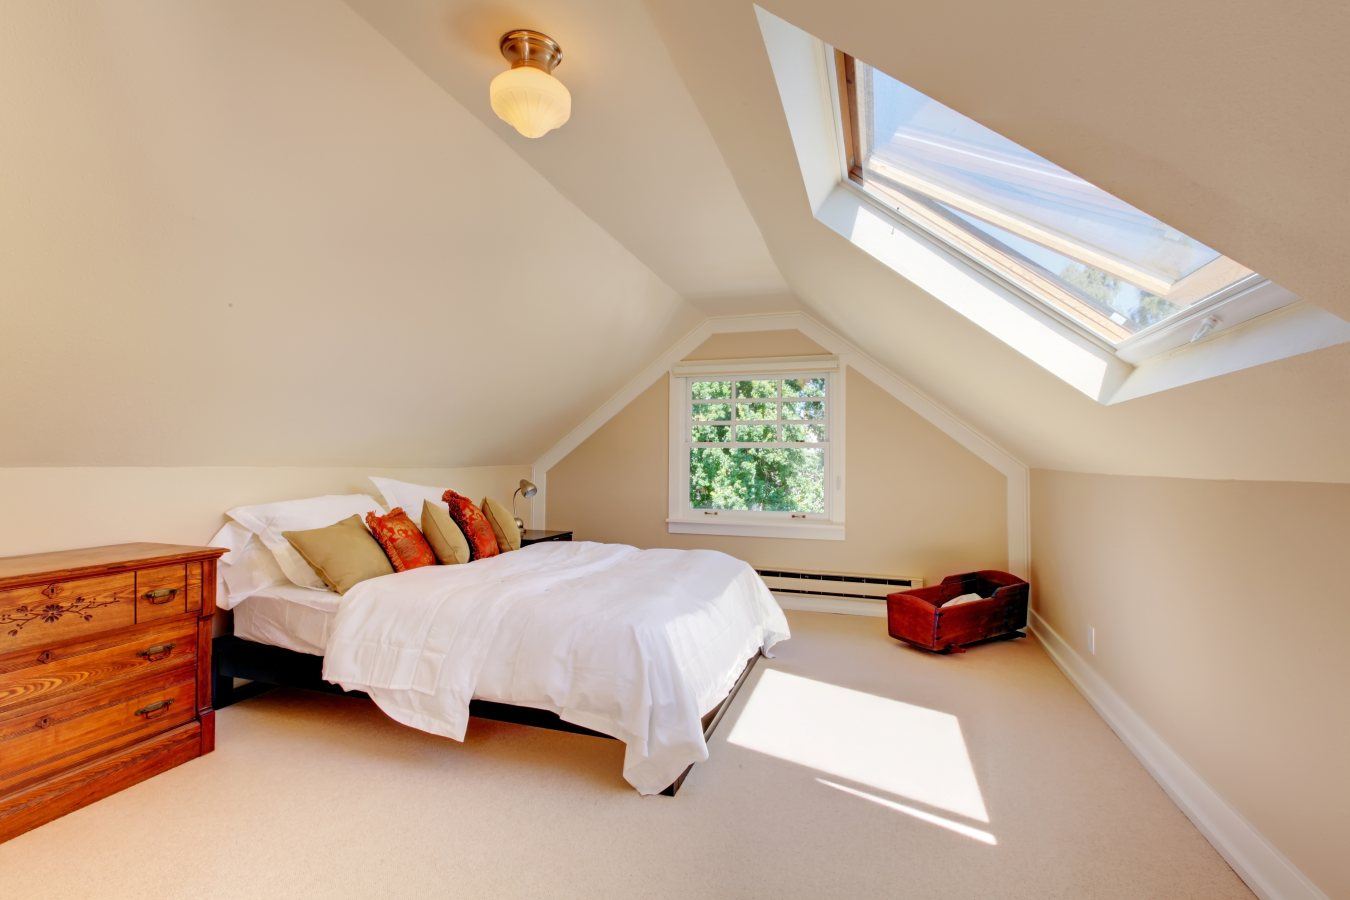 Loft Conversions in the South West